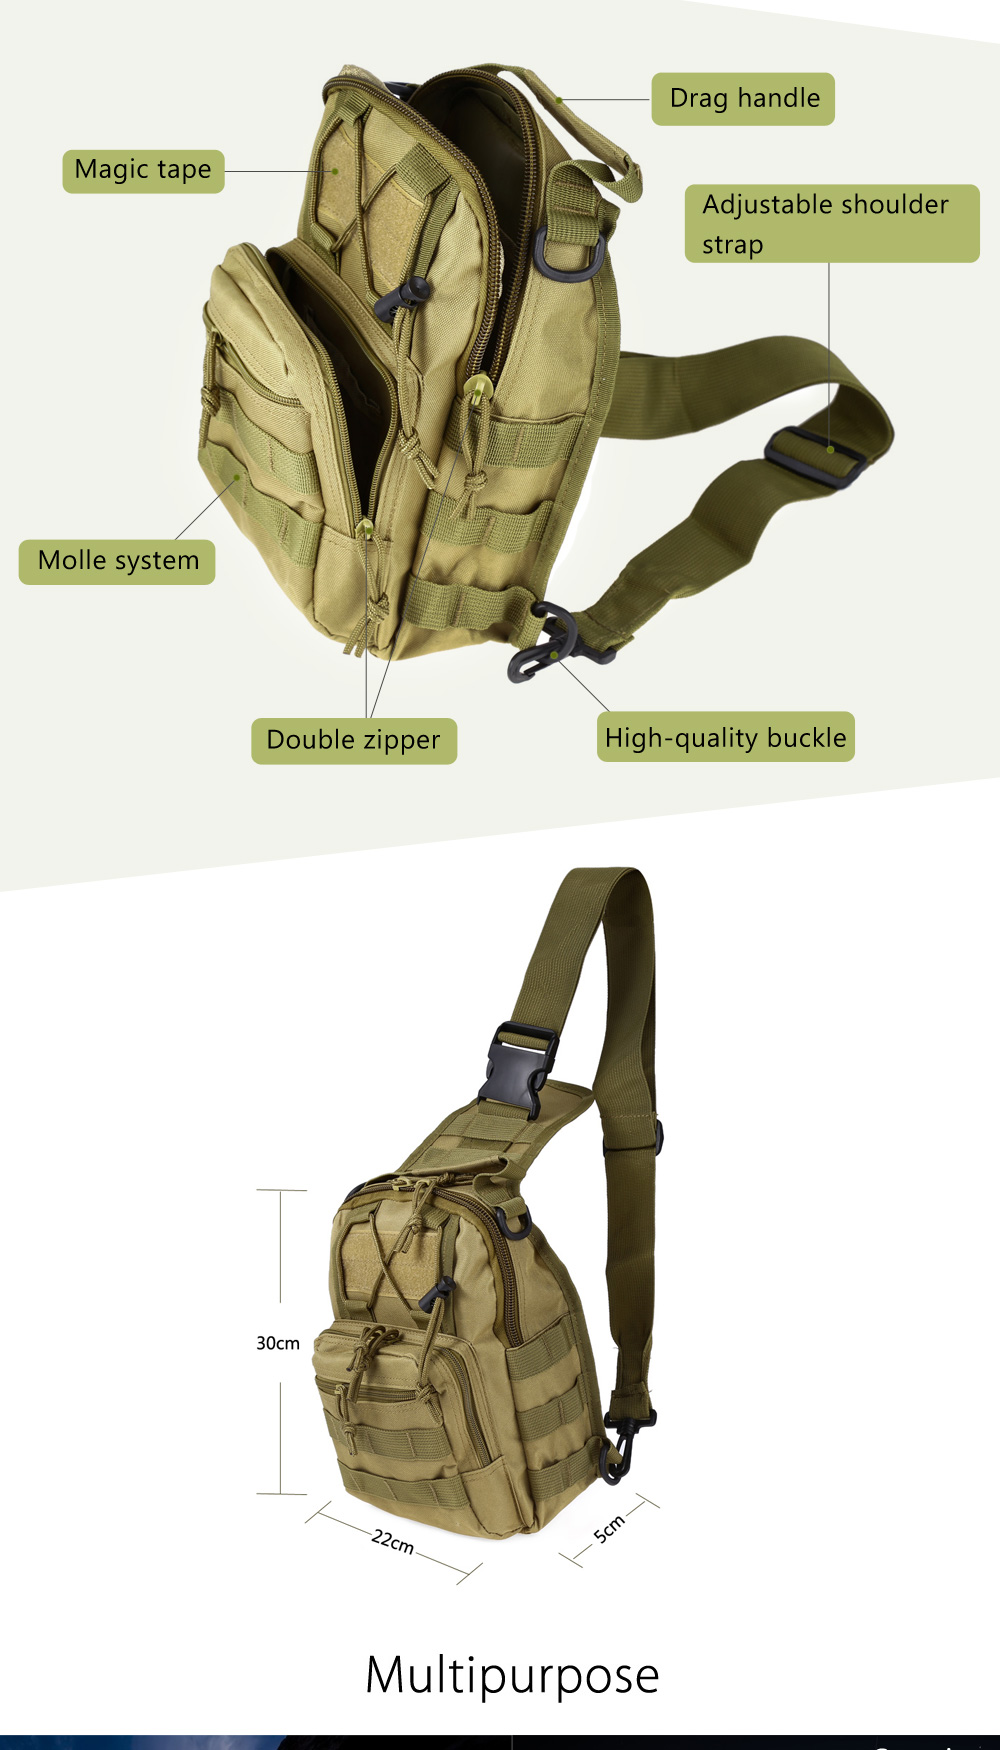 Outlife 600D Outdoor Military Tactical Camping Hiking Camouflage Hunting Shoulder Backpack Sadoun Sales International